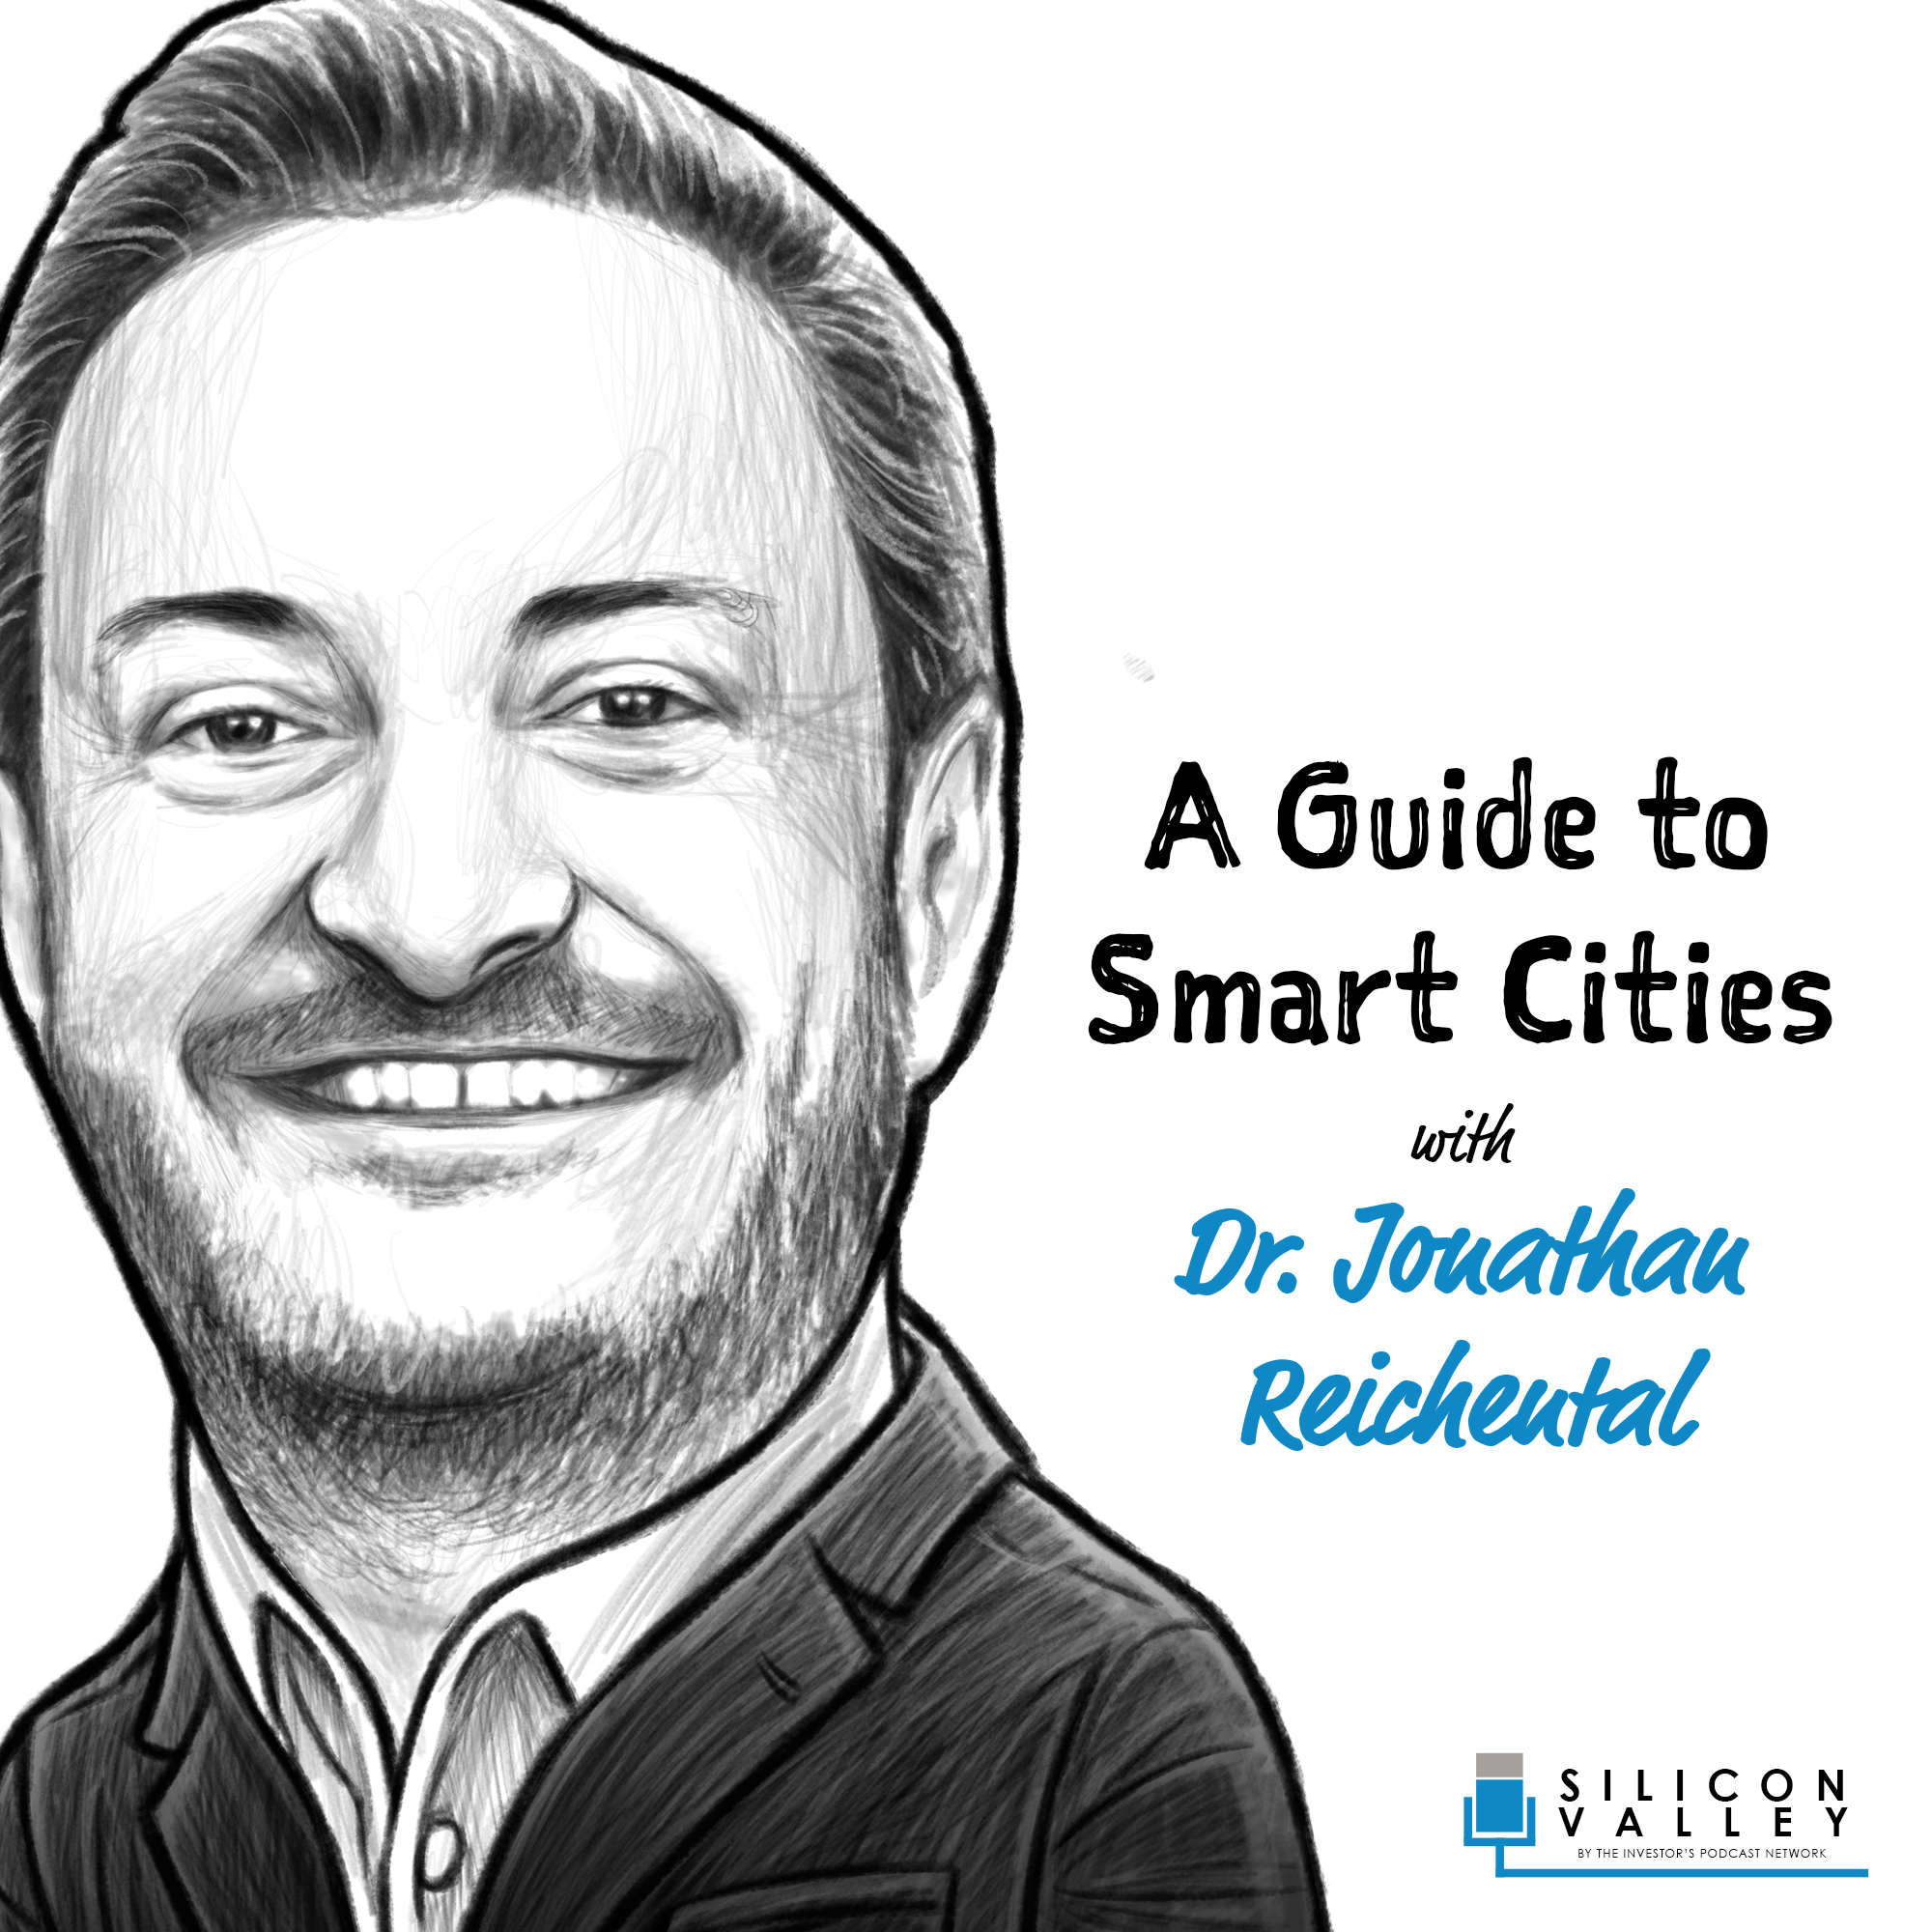 PODCAST: A Guide to Smart Cities with Dr. Jonathan Reichental